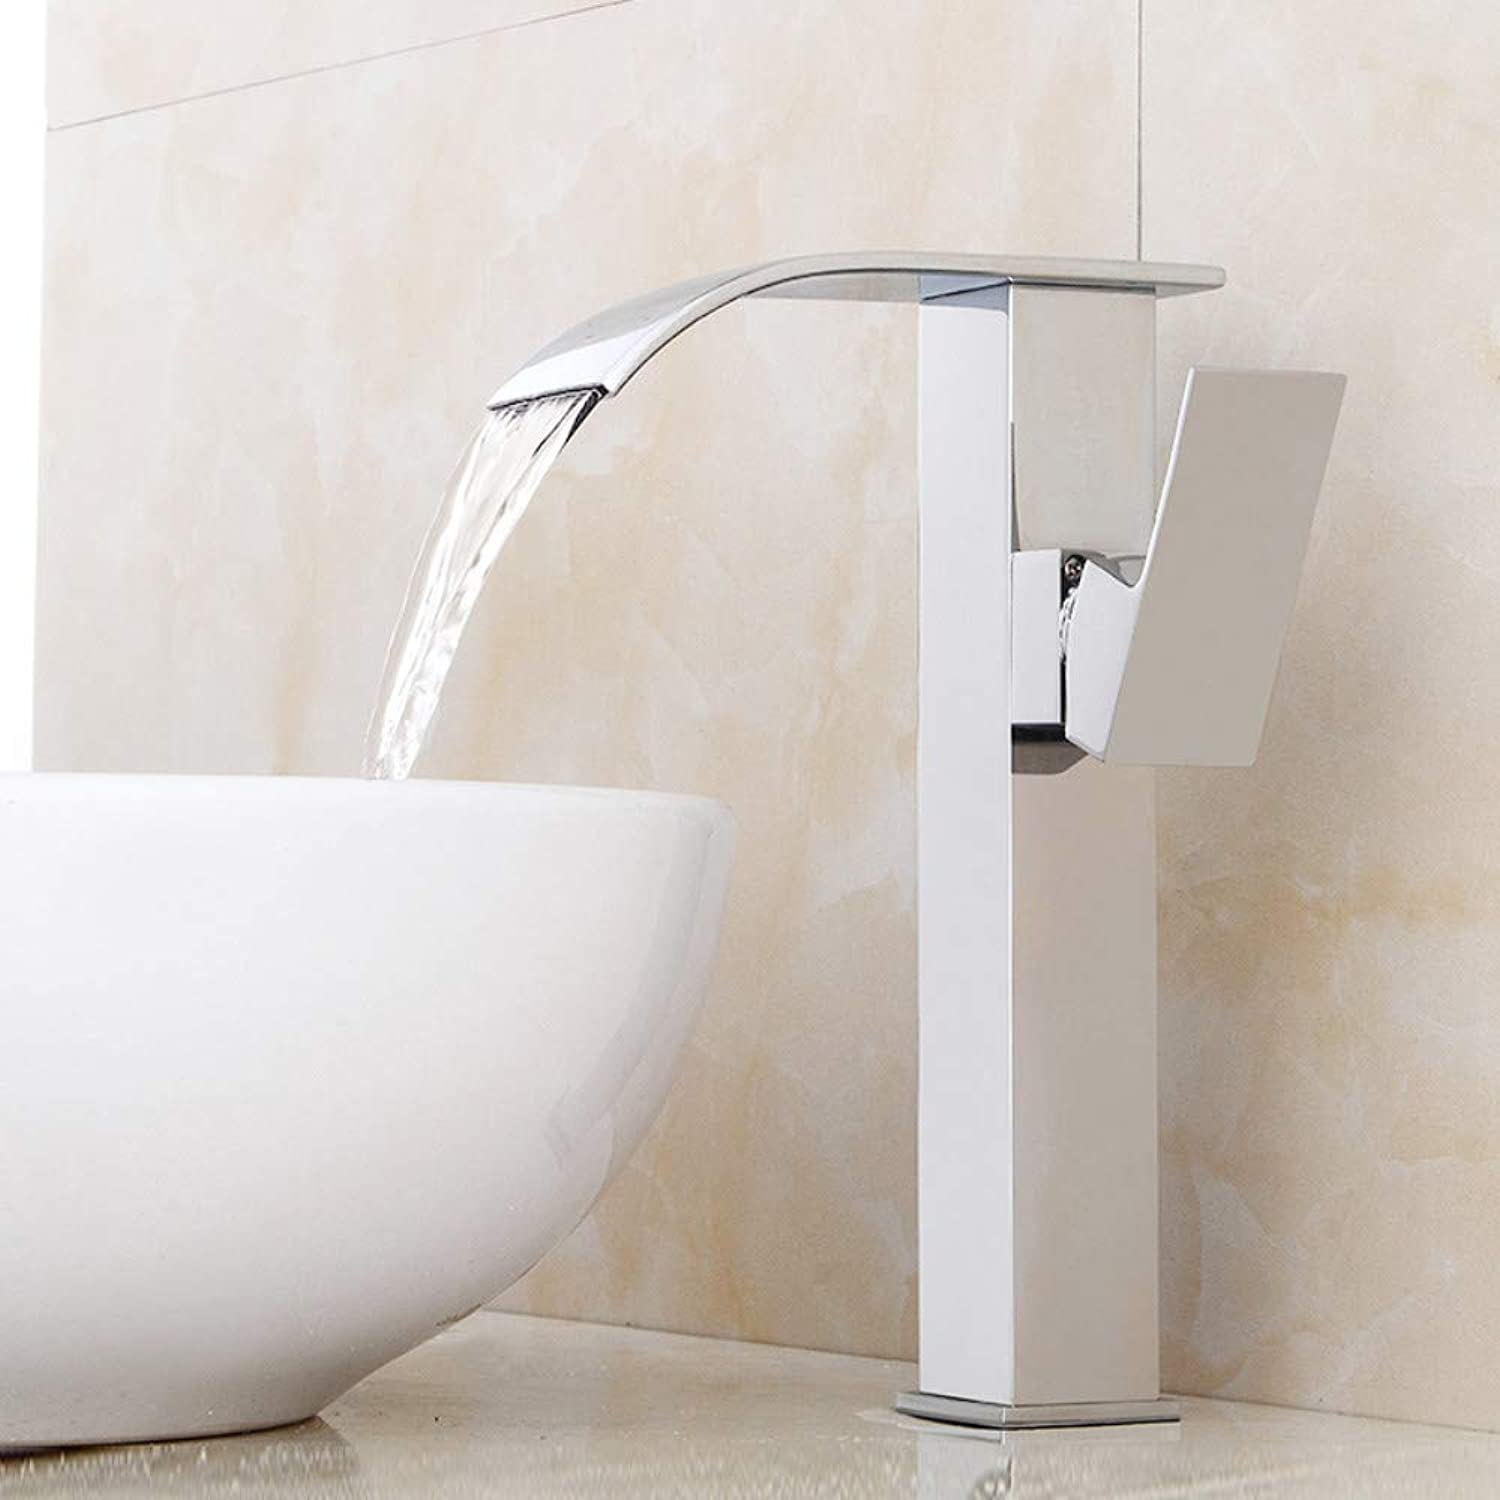 Bathroom Sink Tap Modern Single Handle Bathroom Faucet Waterfall Faucet Chrome Bathroom Waterfall Tall Basin Mixer Faucet